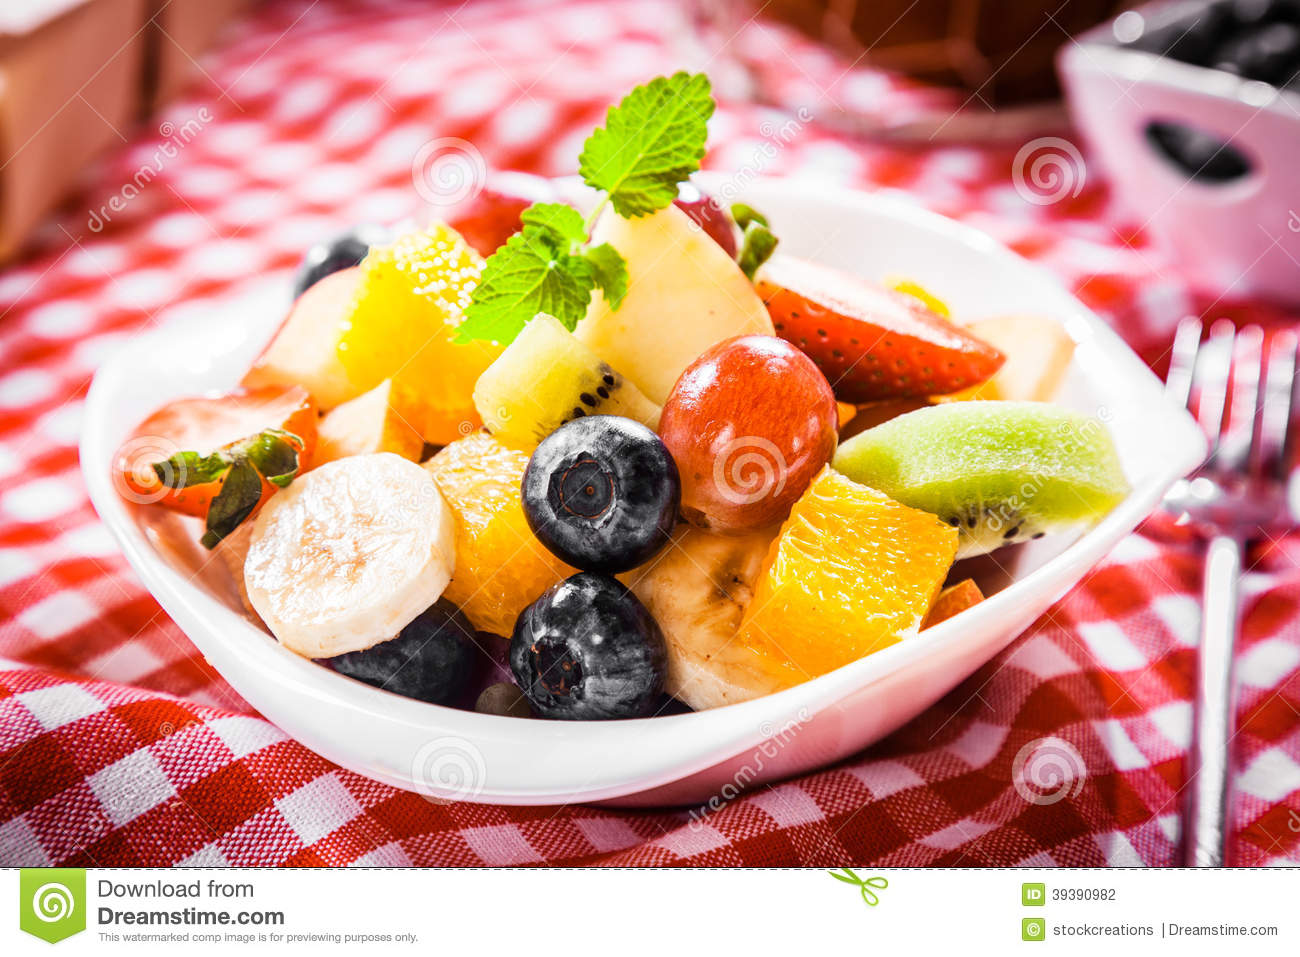 Colorful Fruit Bowl Colorful Bowl Of Tropical Fruit Salad Stock Photo Image